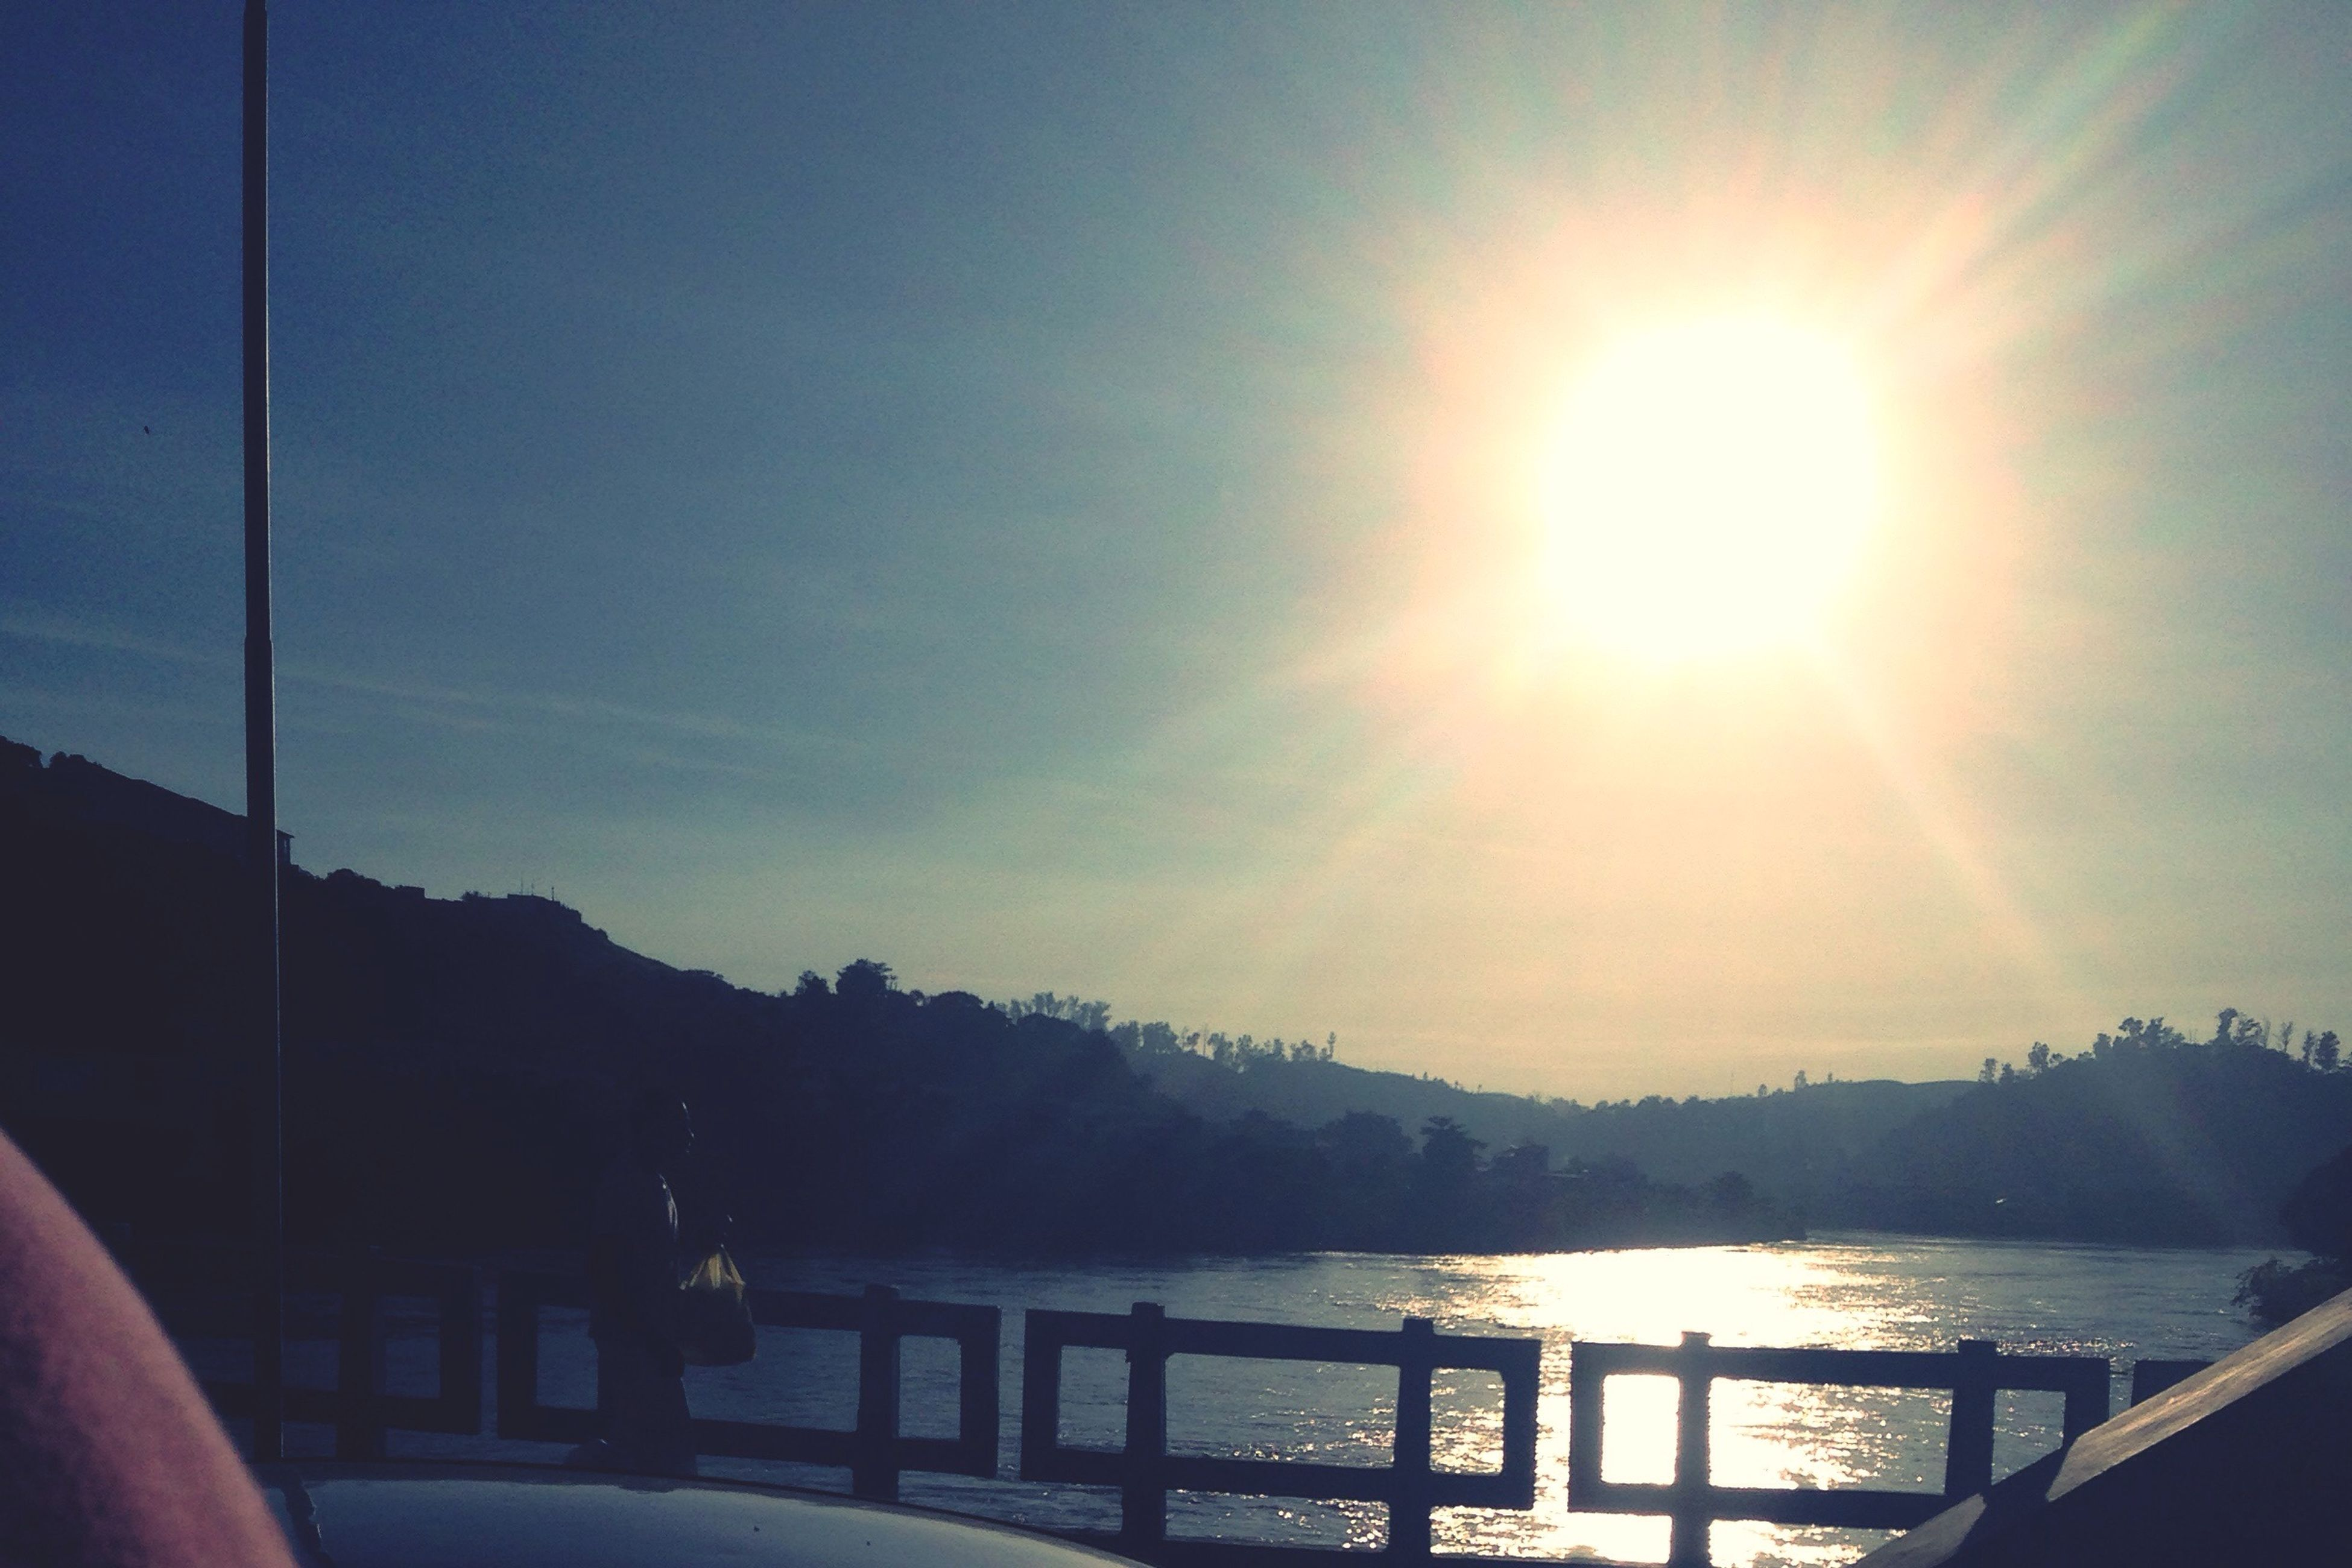 sun, sunbeam, water, sunlight, railing, lens flare, sky, beauty in nature, scenics, reflection, nature, tranquility, mountain, sunny, tranquil scene, silhouette, lake, river, sea